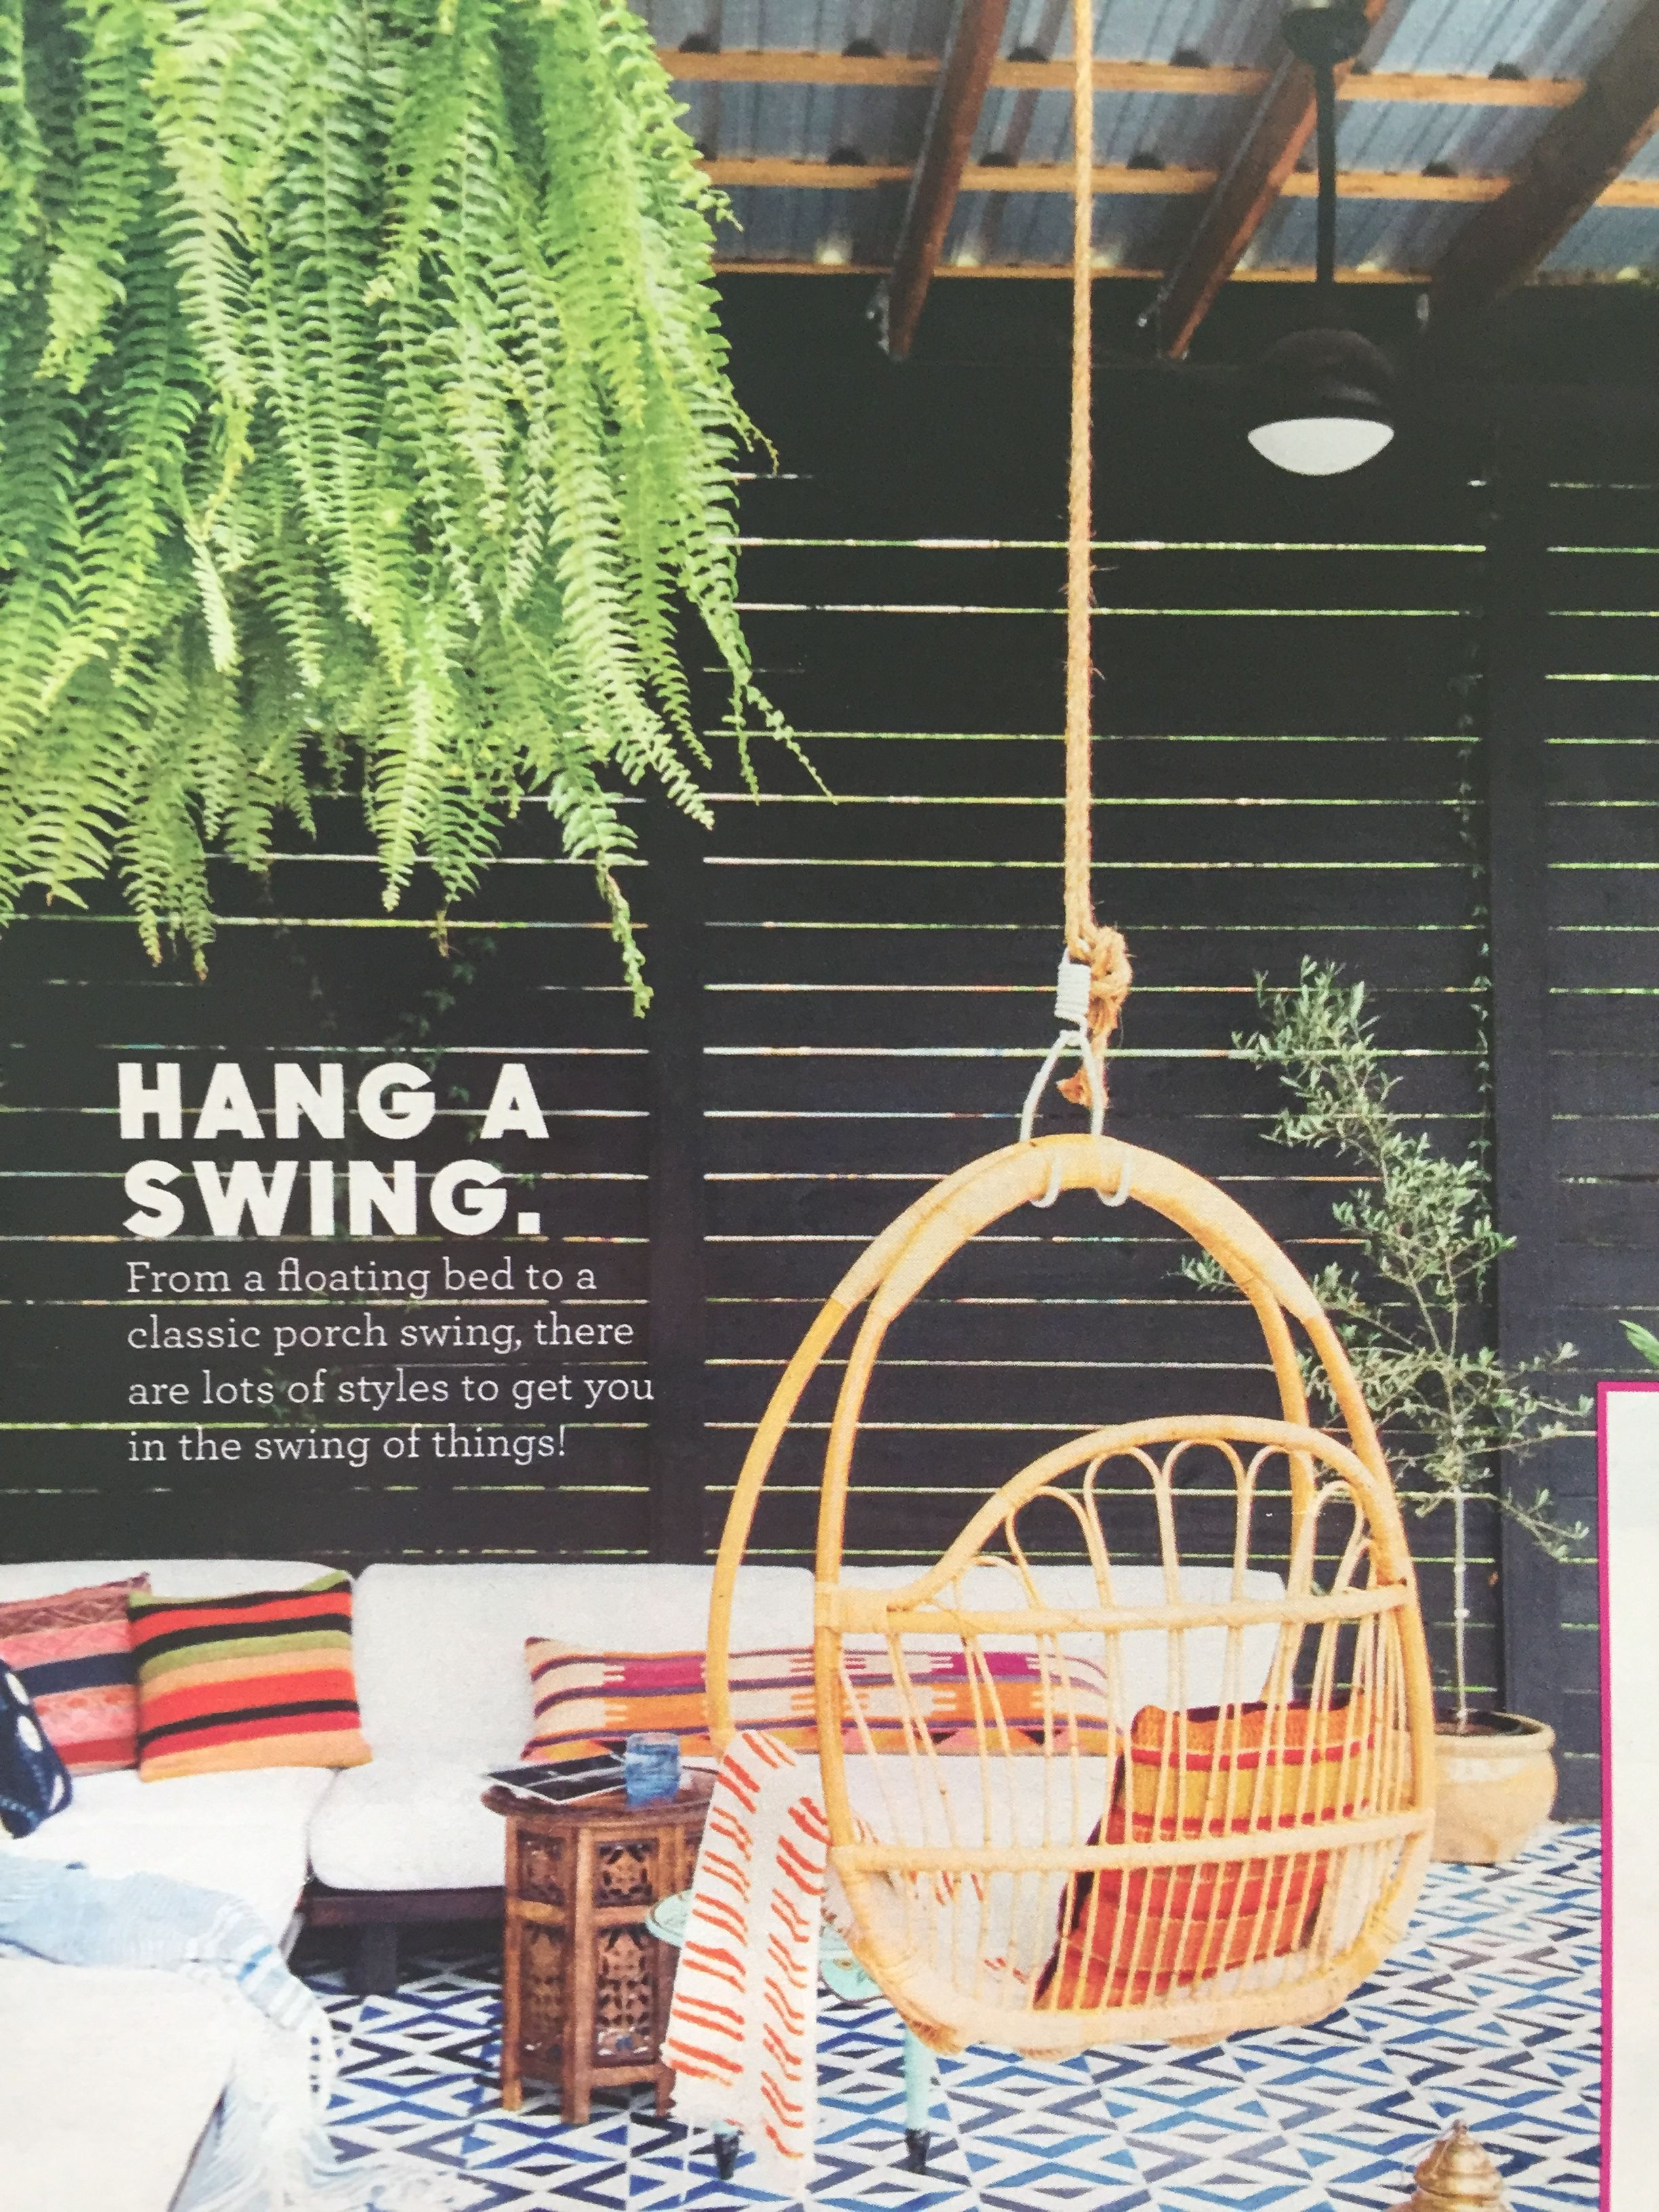 Outdoor egg swing Floating bed, Hanging chair, Porch swing